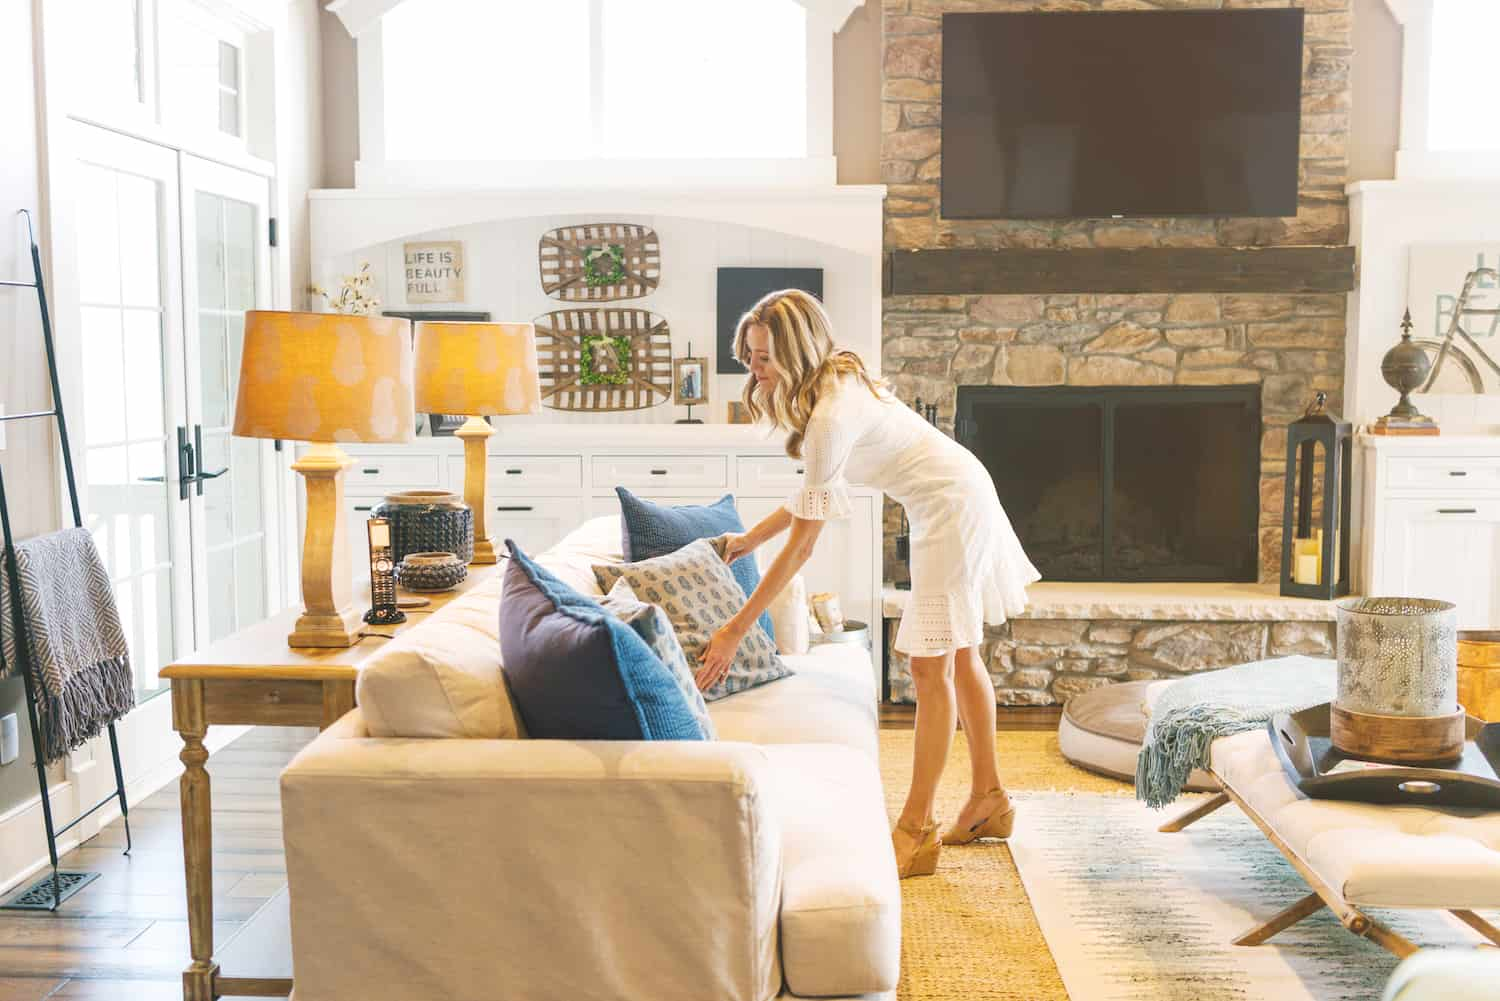 Get Your Home Ready to Sell with Stacy Snively, ZVilleHomes.com